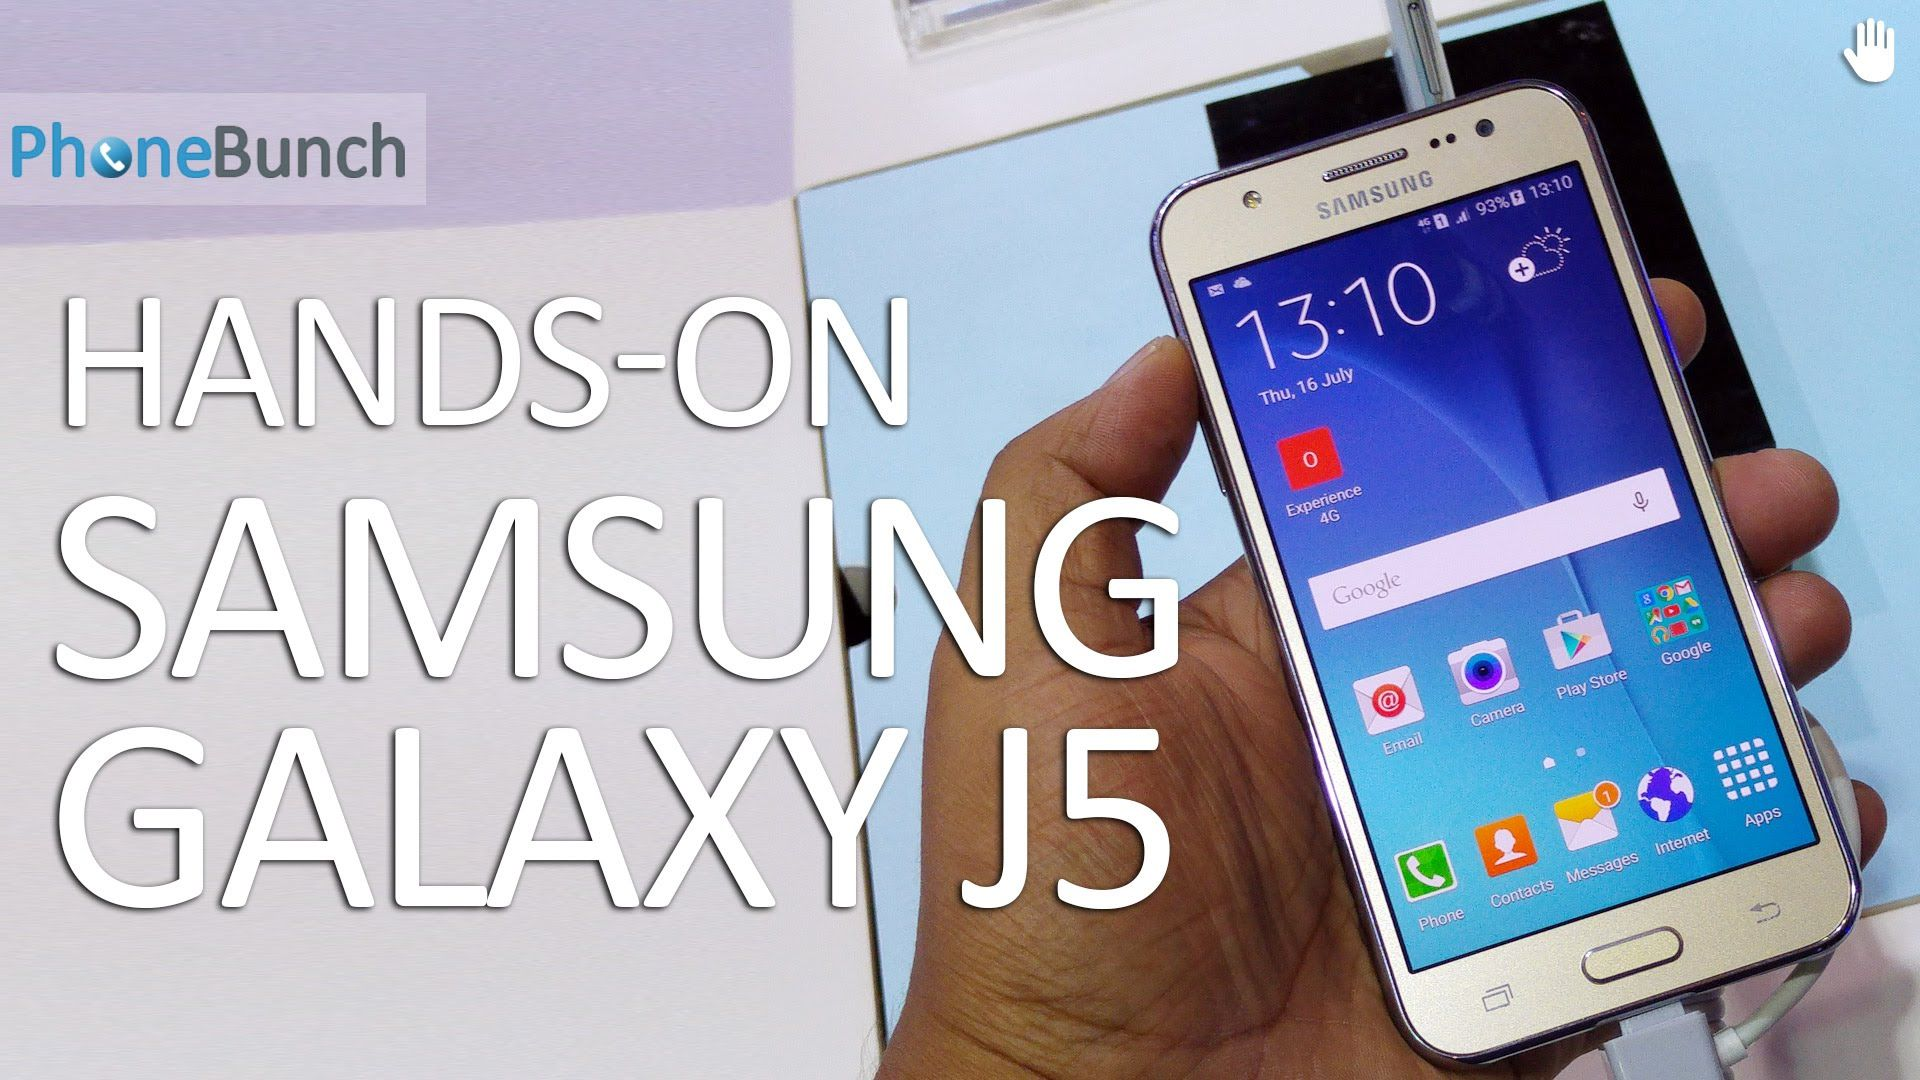 Samsung Galaxy J5 Hands on video with first impressions on camera and performance GalaxyJ5